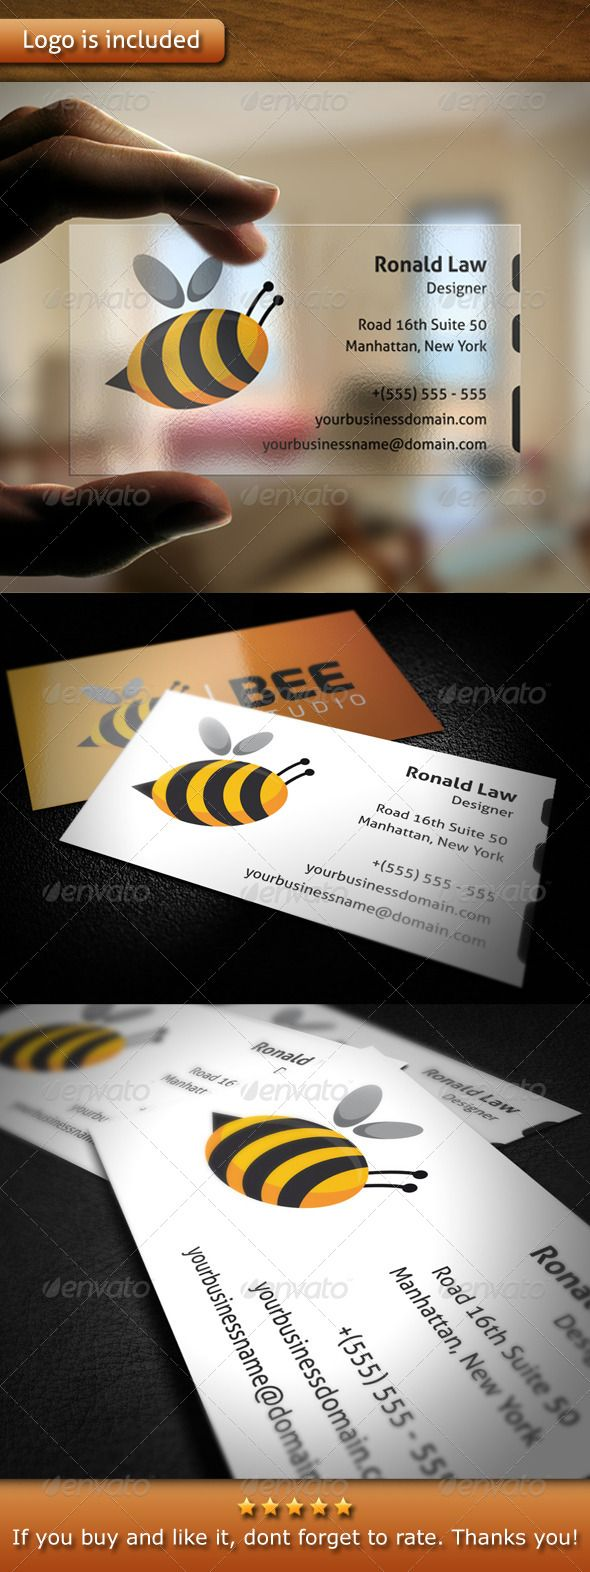 31 best Business Cards images on Pinterest | Visit cards, Business ...